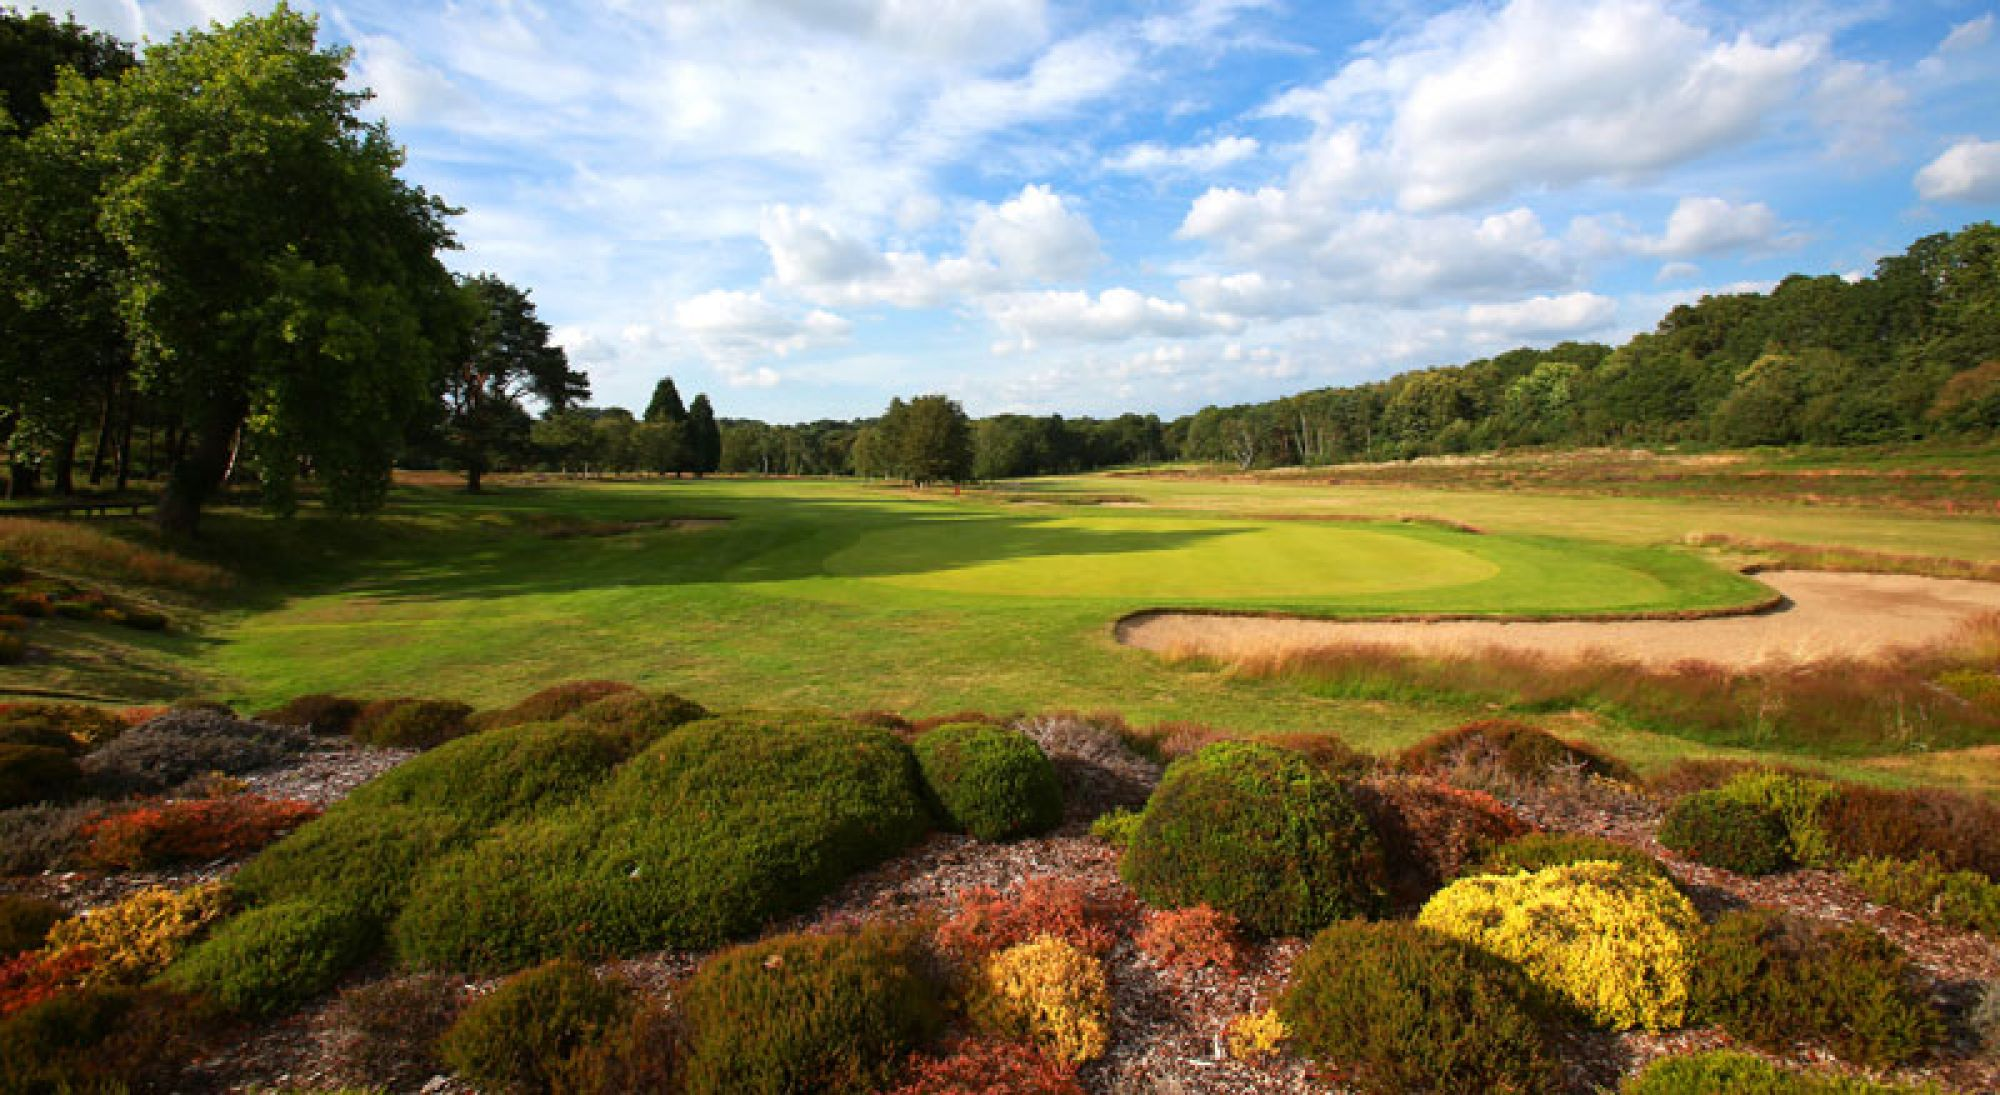 Broadstone Golf Course has got lots of the most excellent golf course within Devon